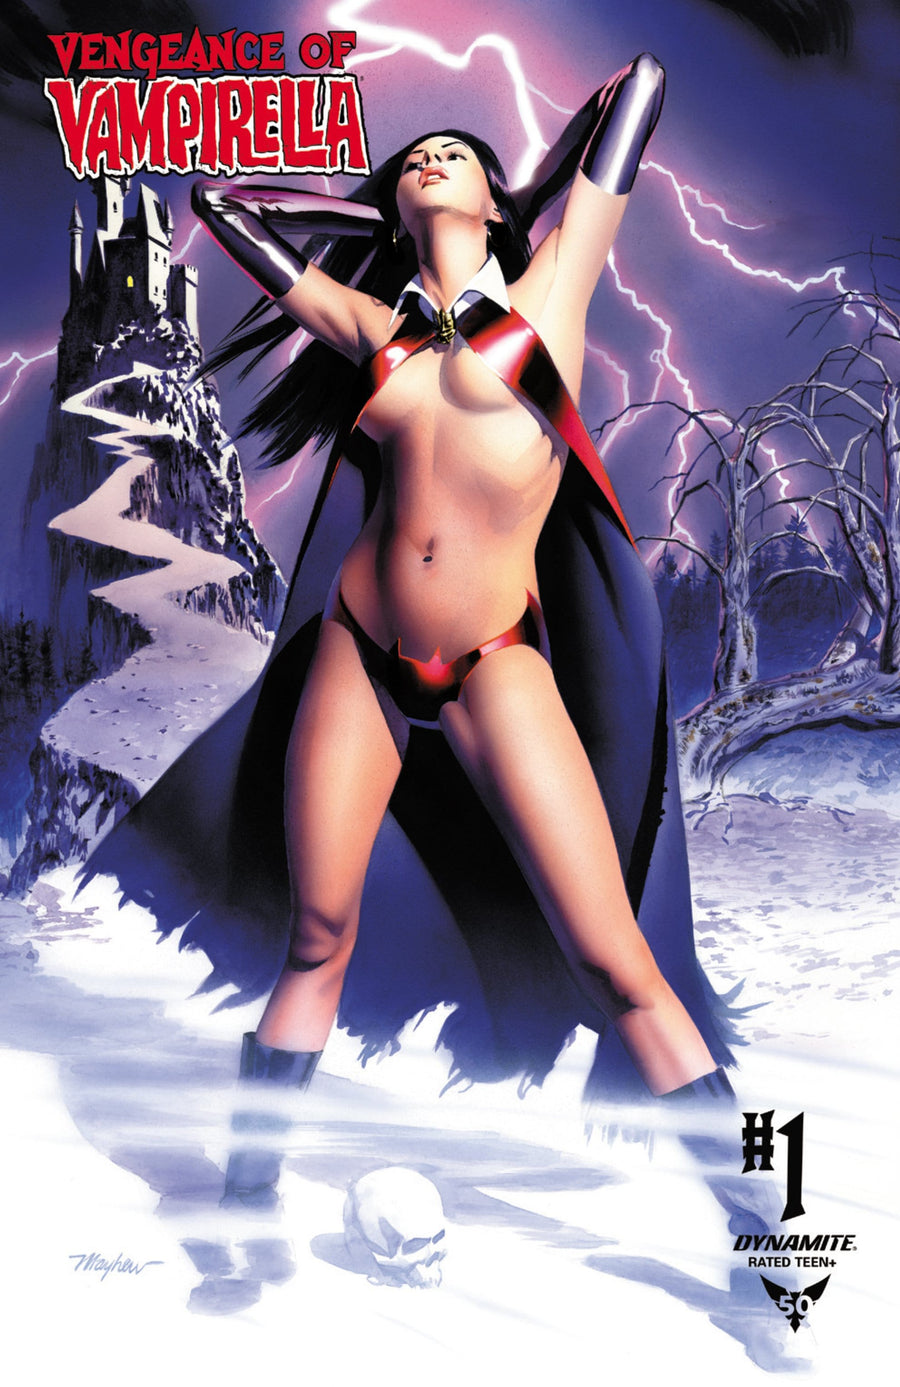 VENGEANCE OF VAMPIRELLA #1 MIKE MAYHEW STUDIO VARIANT COVER EXCLUSIVE OPTIONS